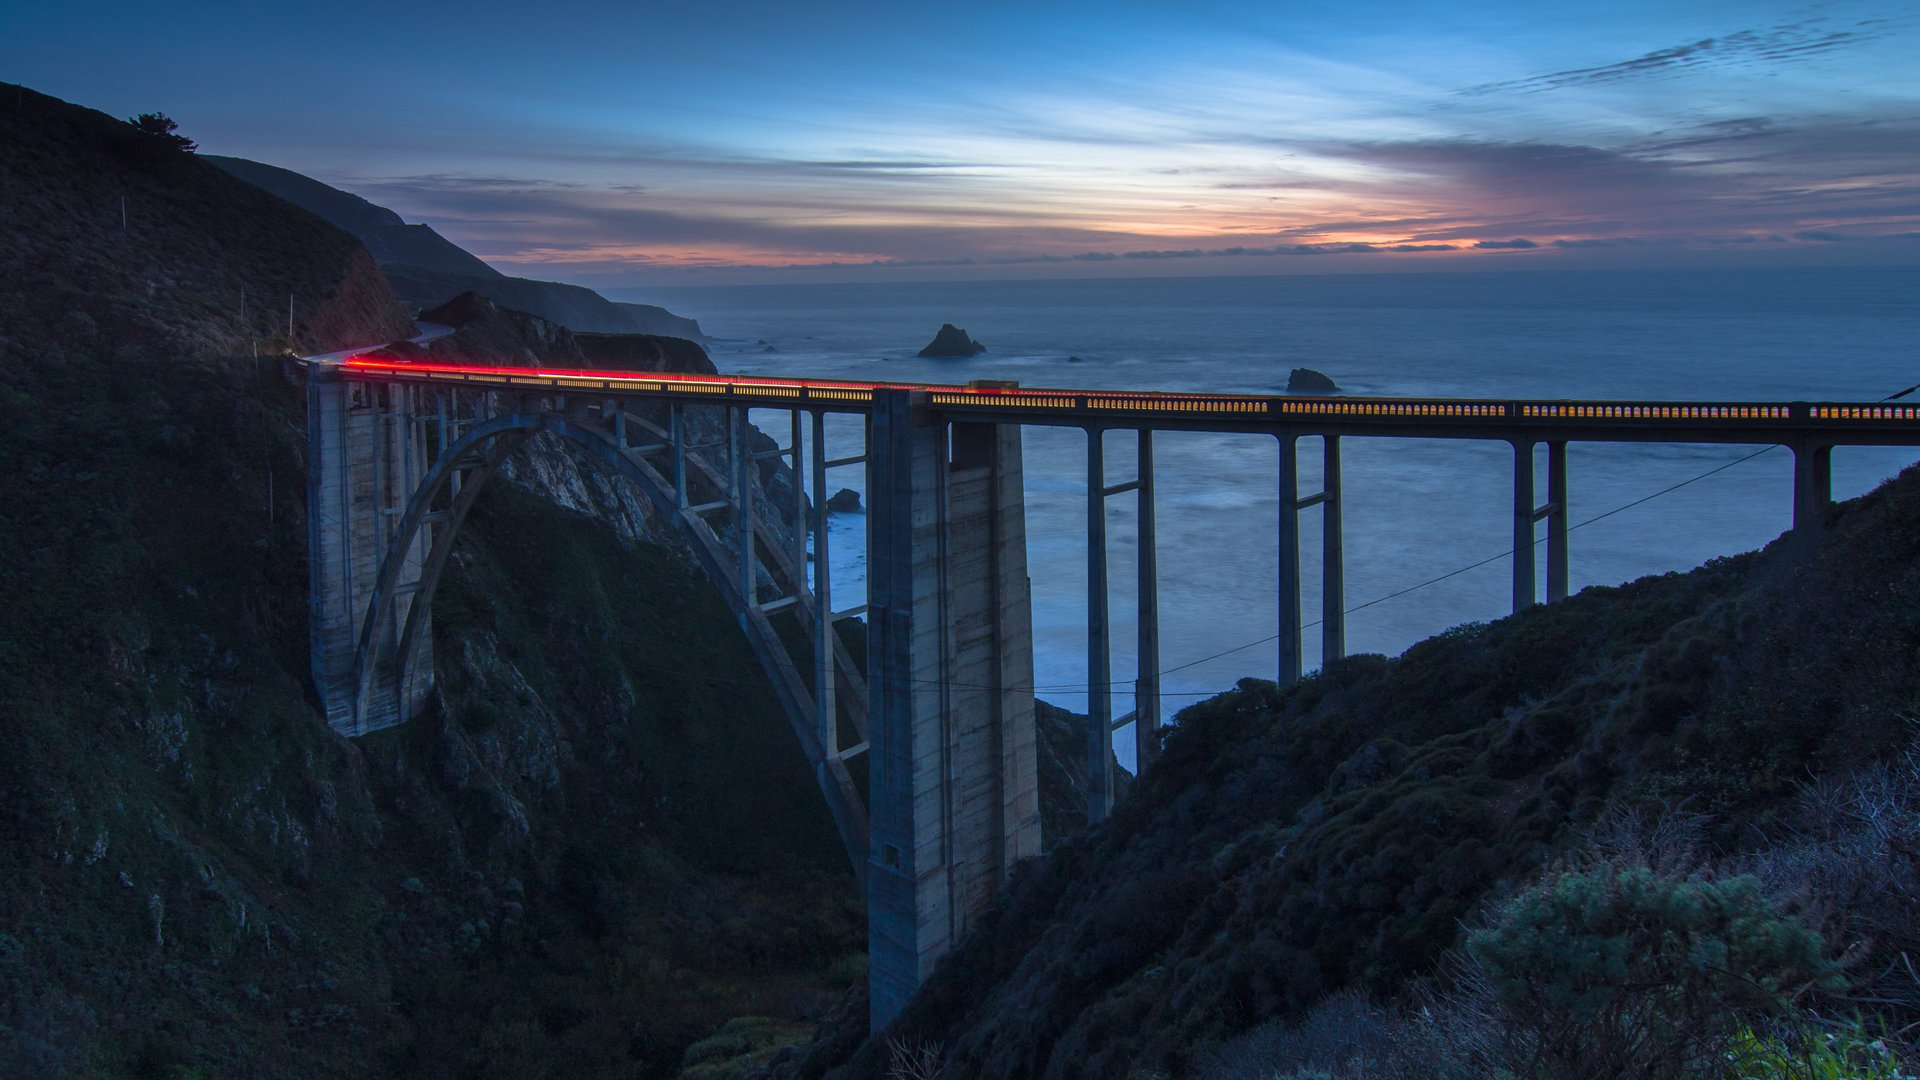 Bixby Bridge, Big Sur coast of California 2019